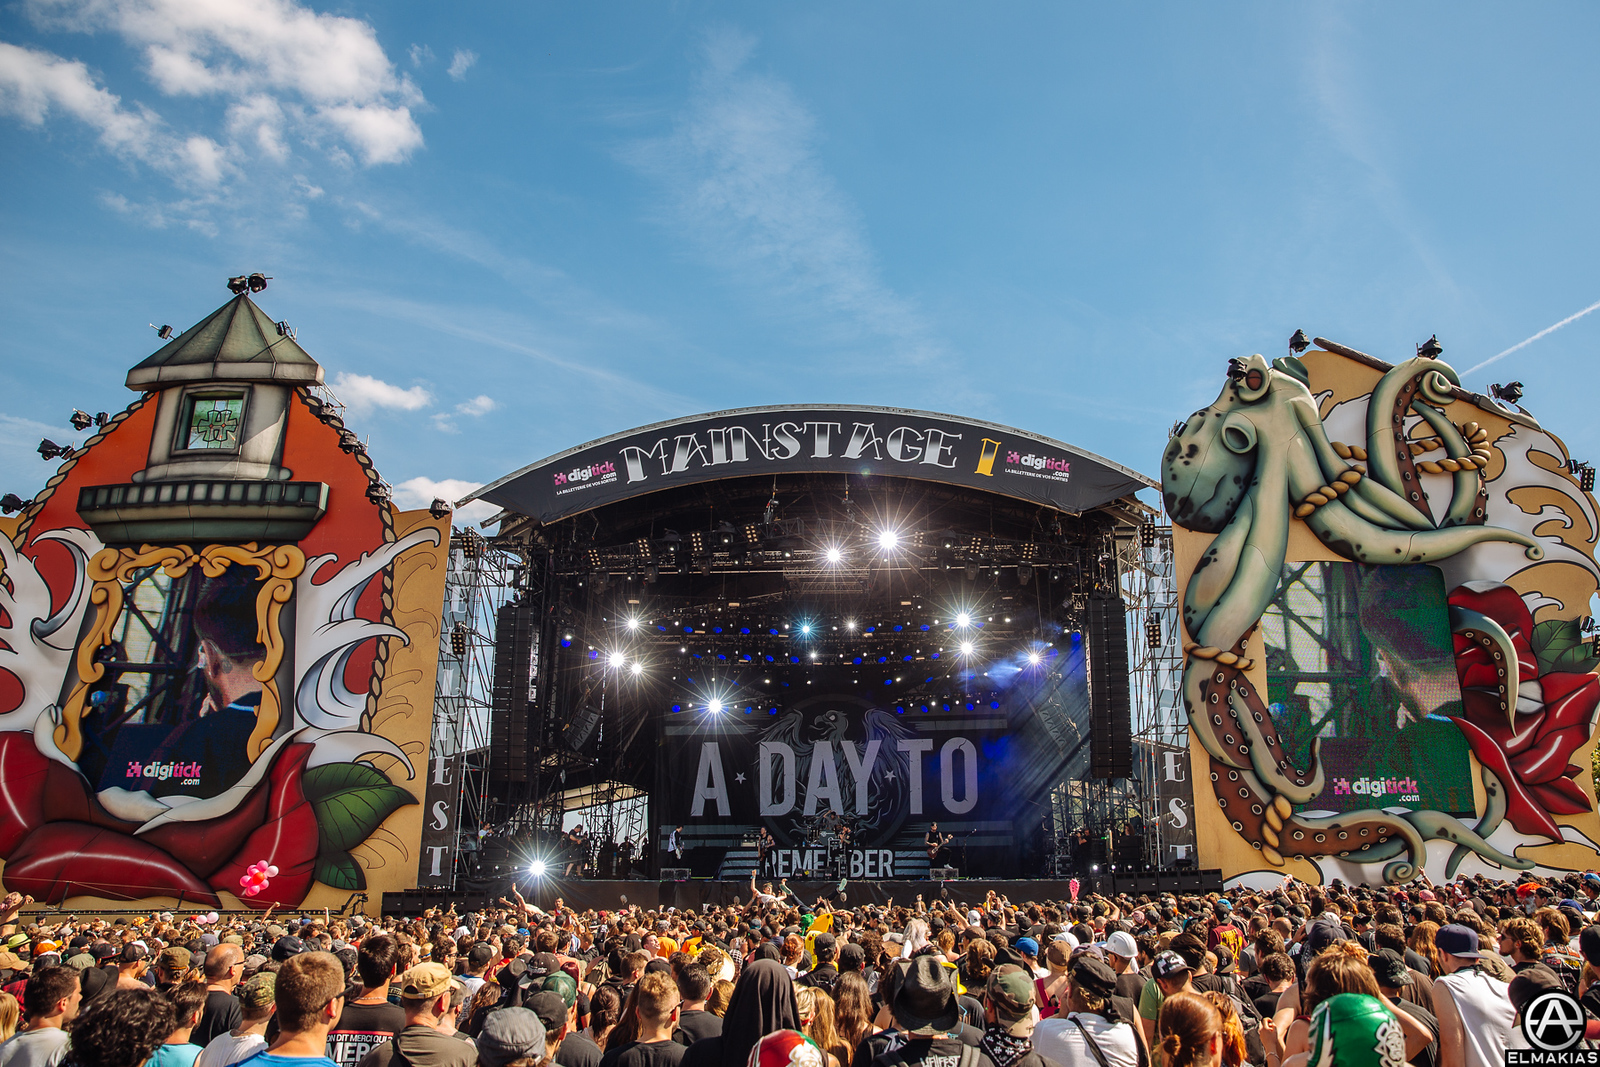 A Day To Remember live at Hellfest in Clisson, France